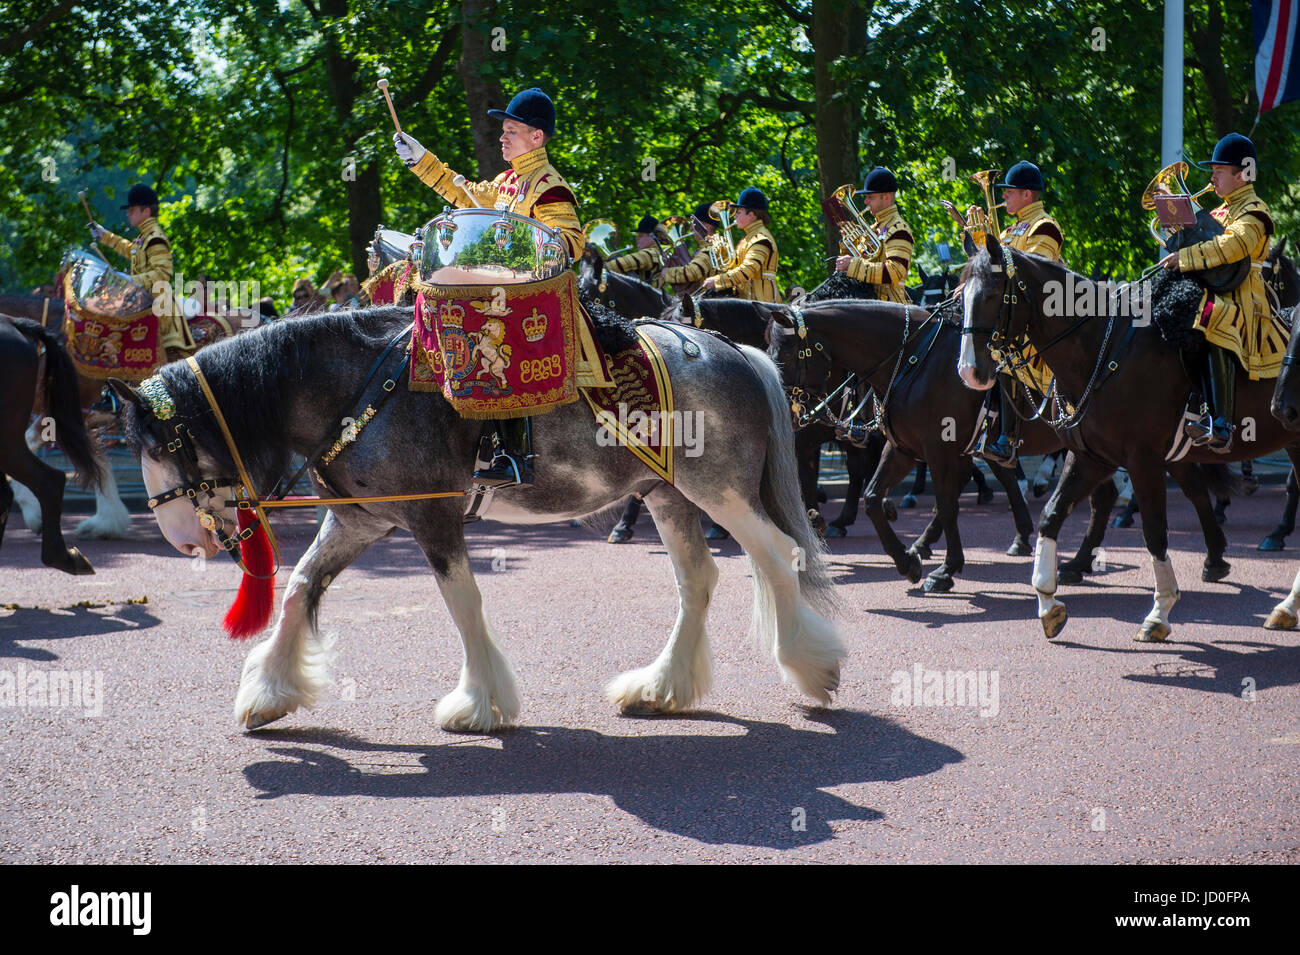 LONDON, UK - JUNE 17, 2017: Mounted military band parade in formation down The Mall in a royal Trooping the Colour - Stock Image